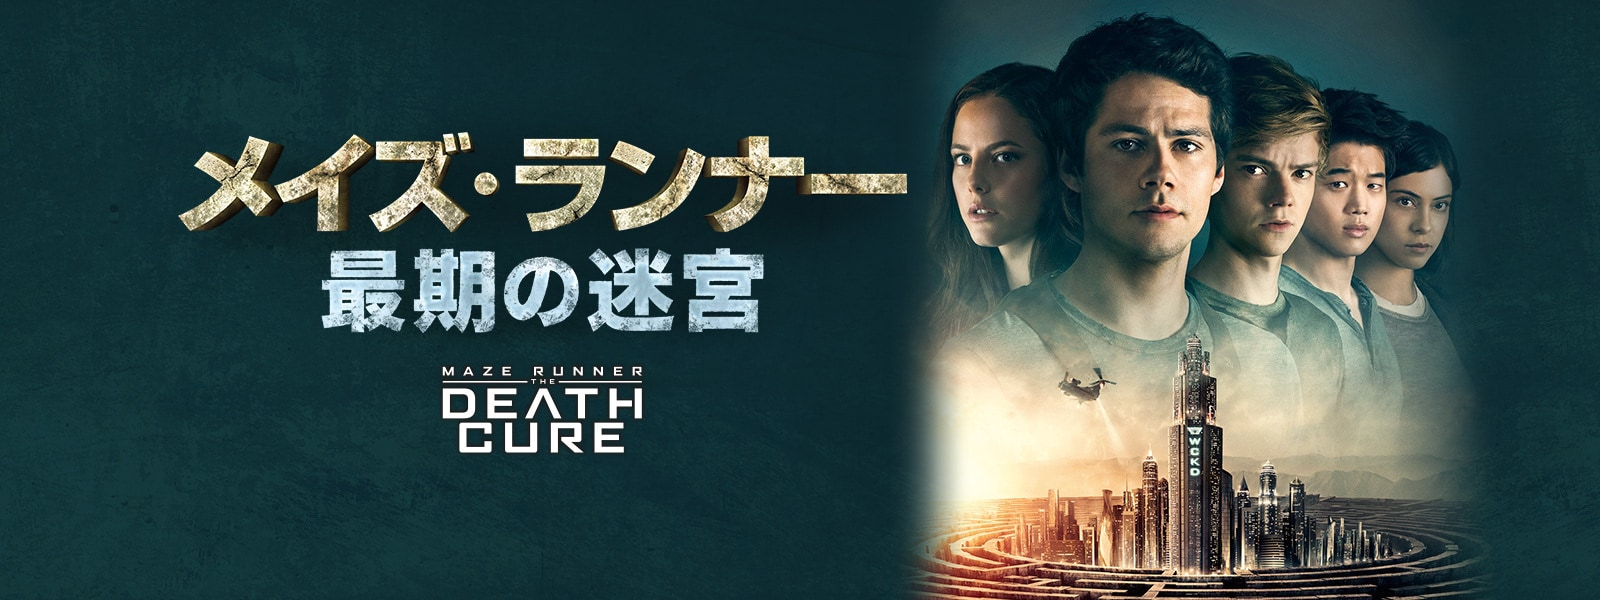 Maze Runner: The Death Cure Hero